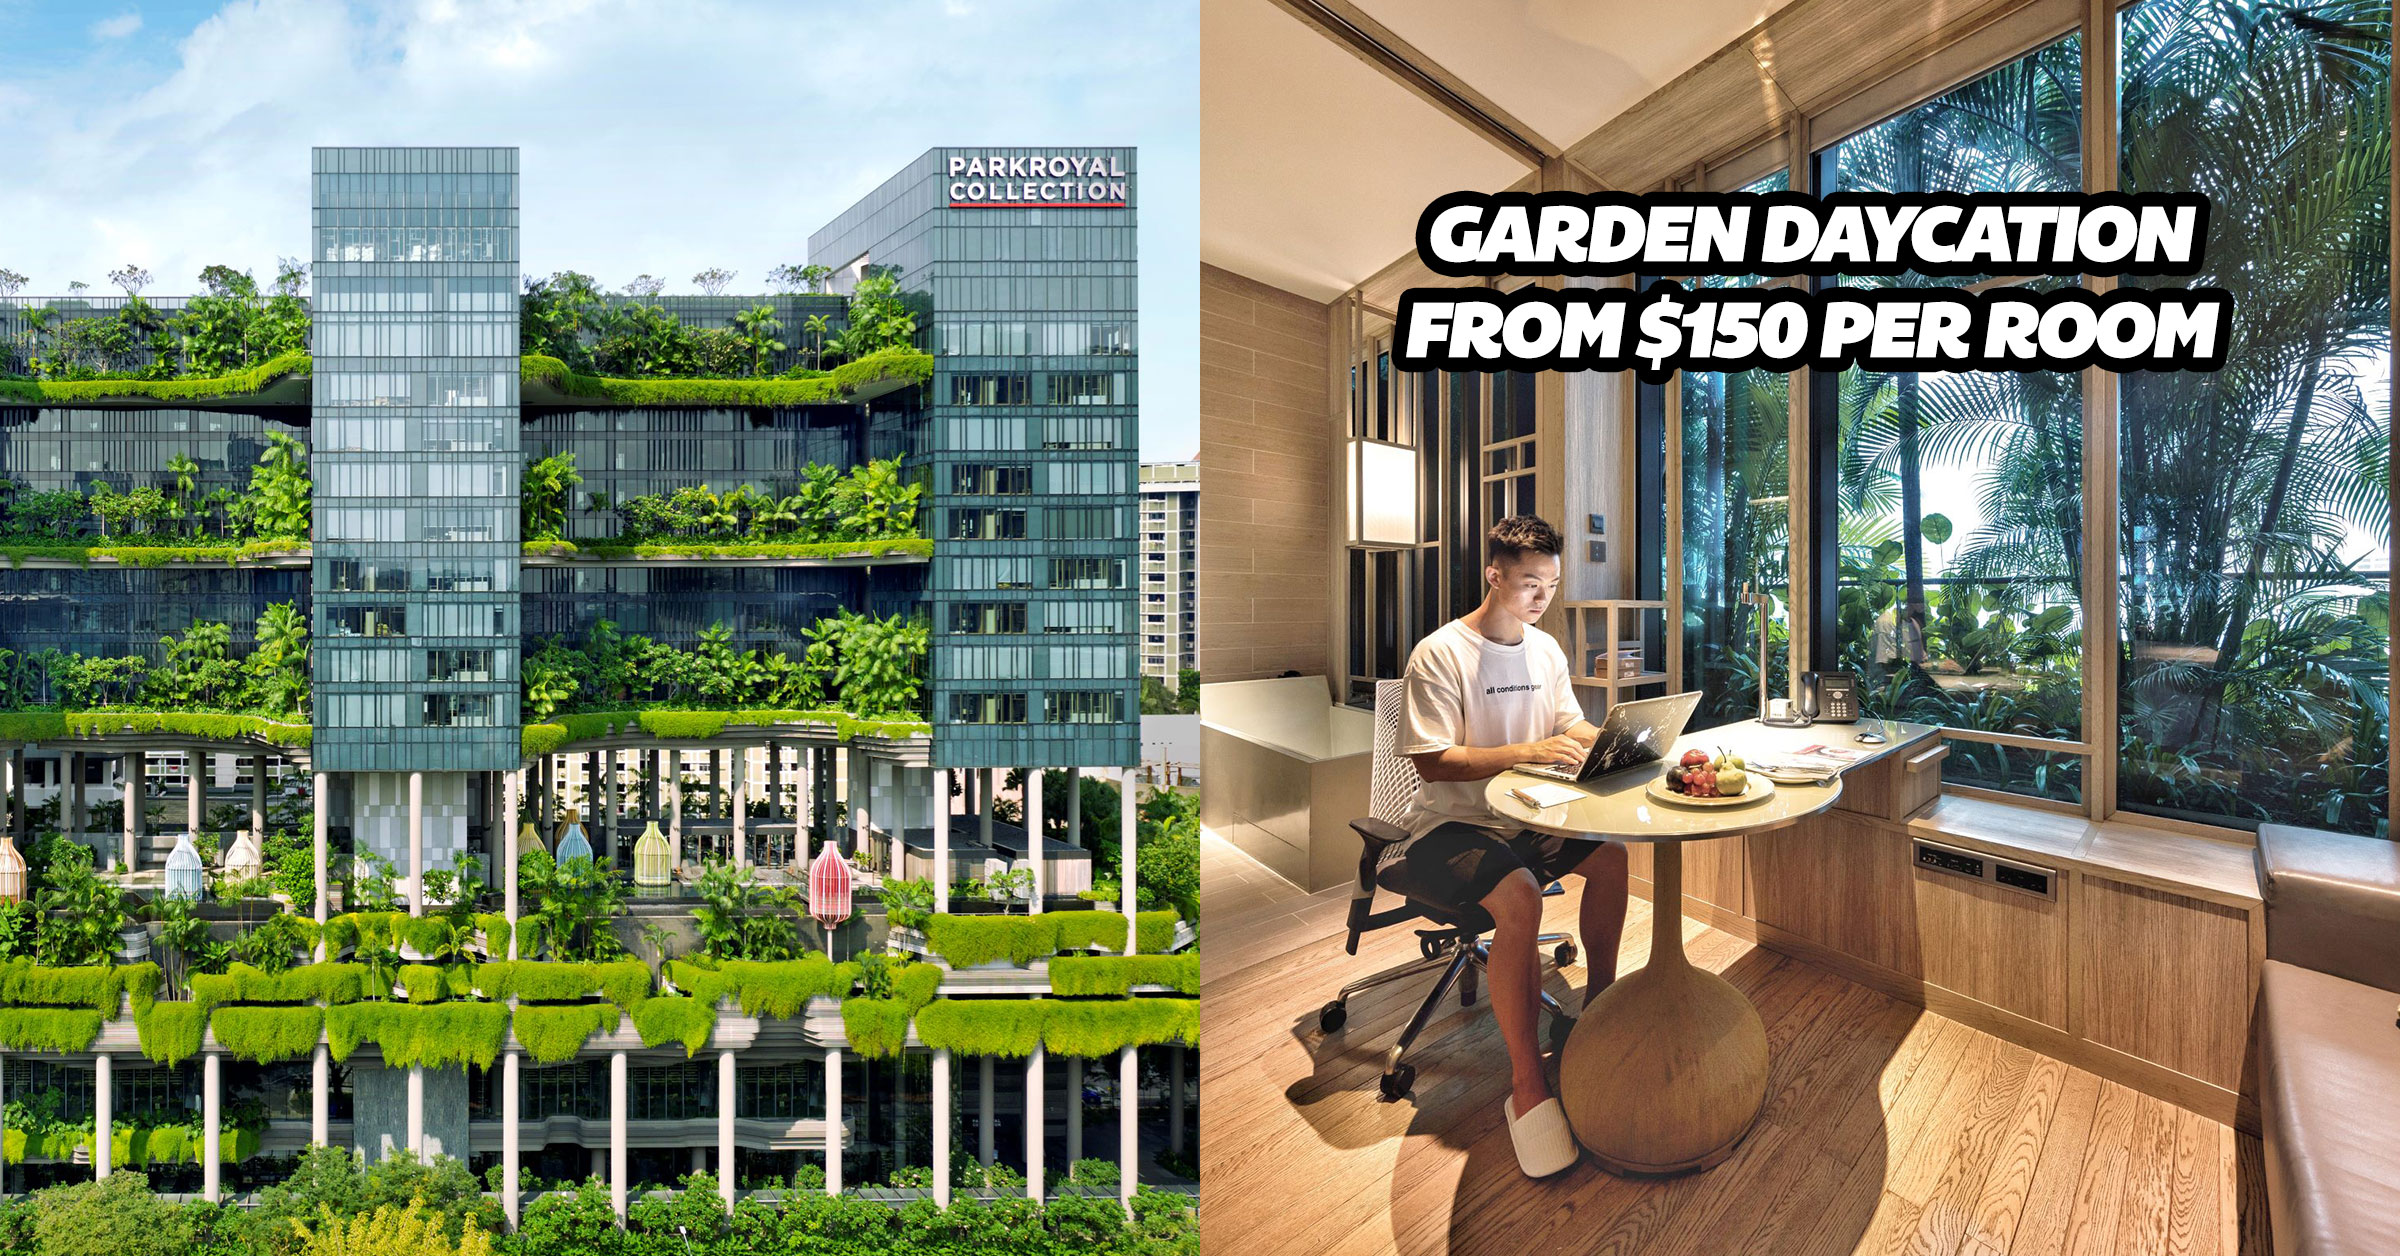 garden-daycation-park-royal-pickering-featured